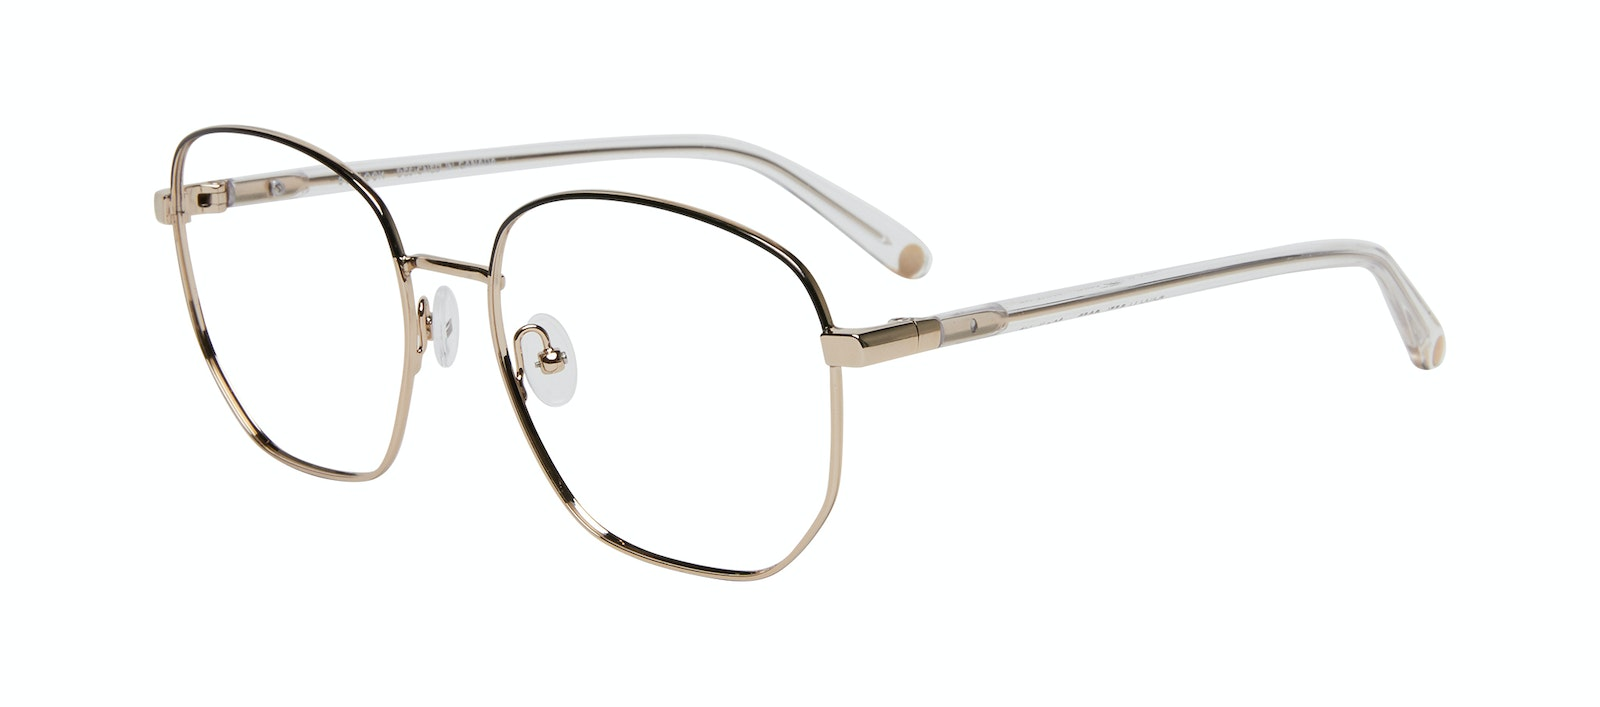 Affordable Fashion Glasses Round Eyeglasses Women Laïka Deep Gold Tilt